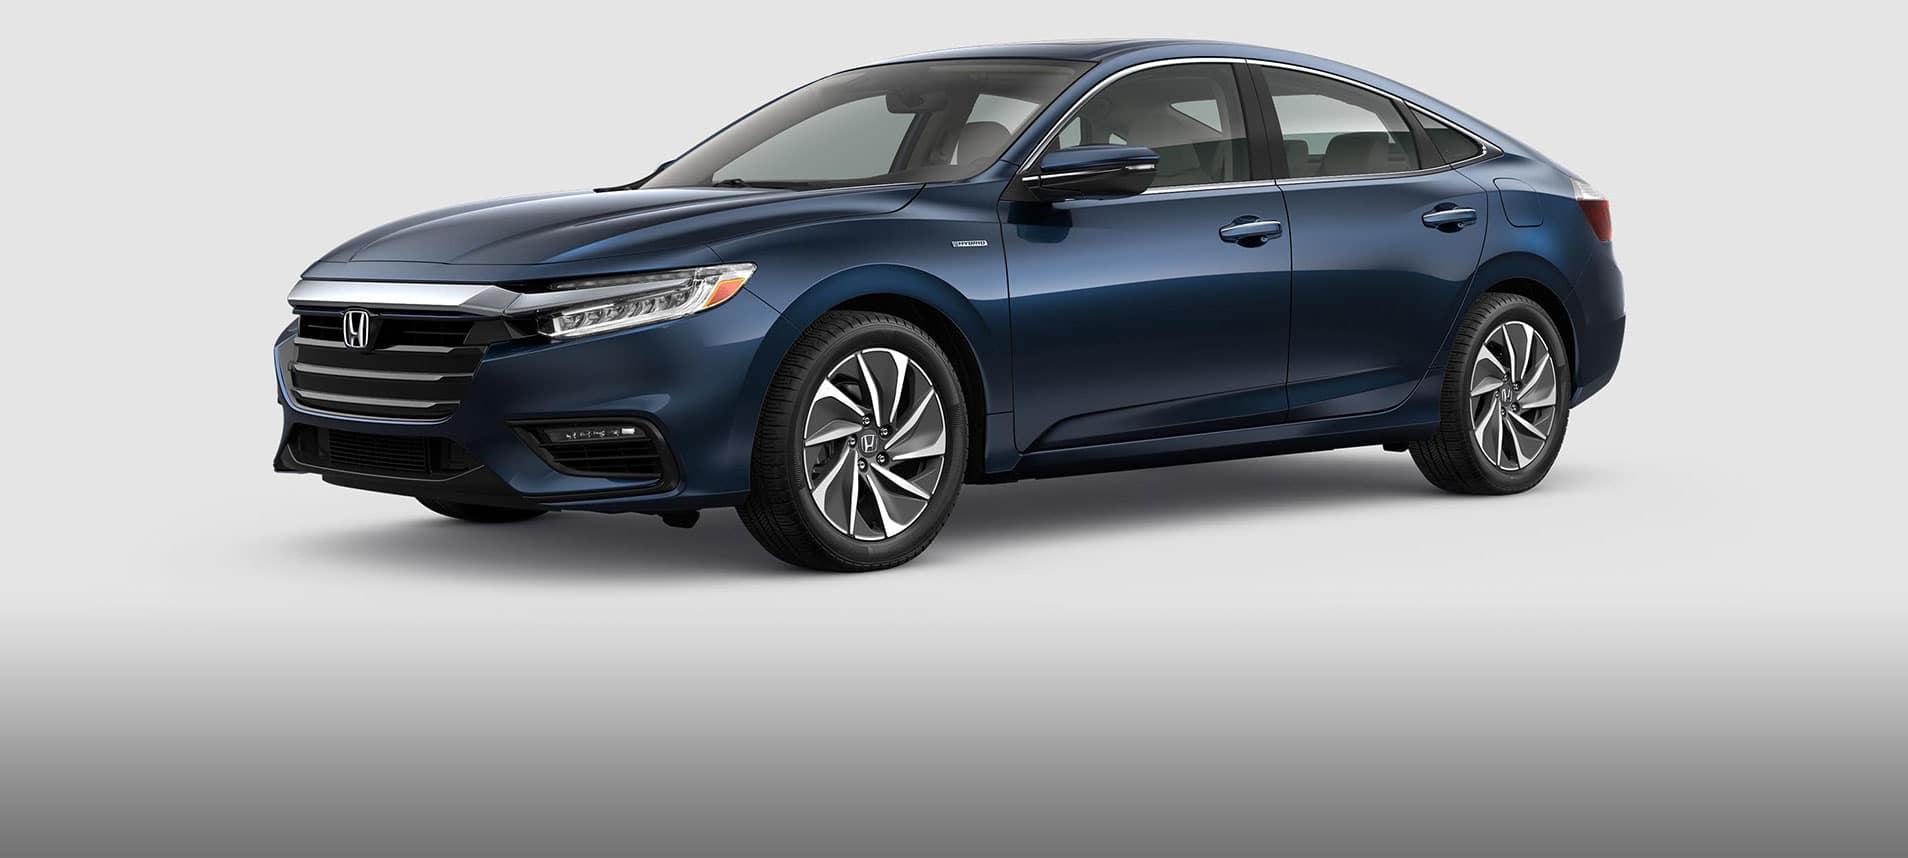 Honda Launches All-New 2019 Insight Sedan into Production in